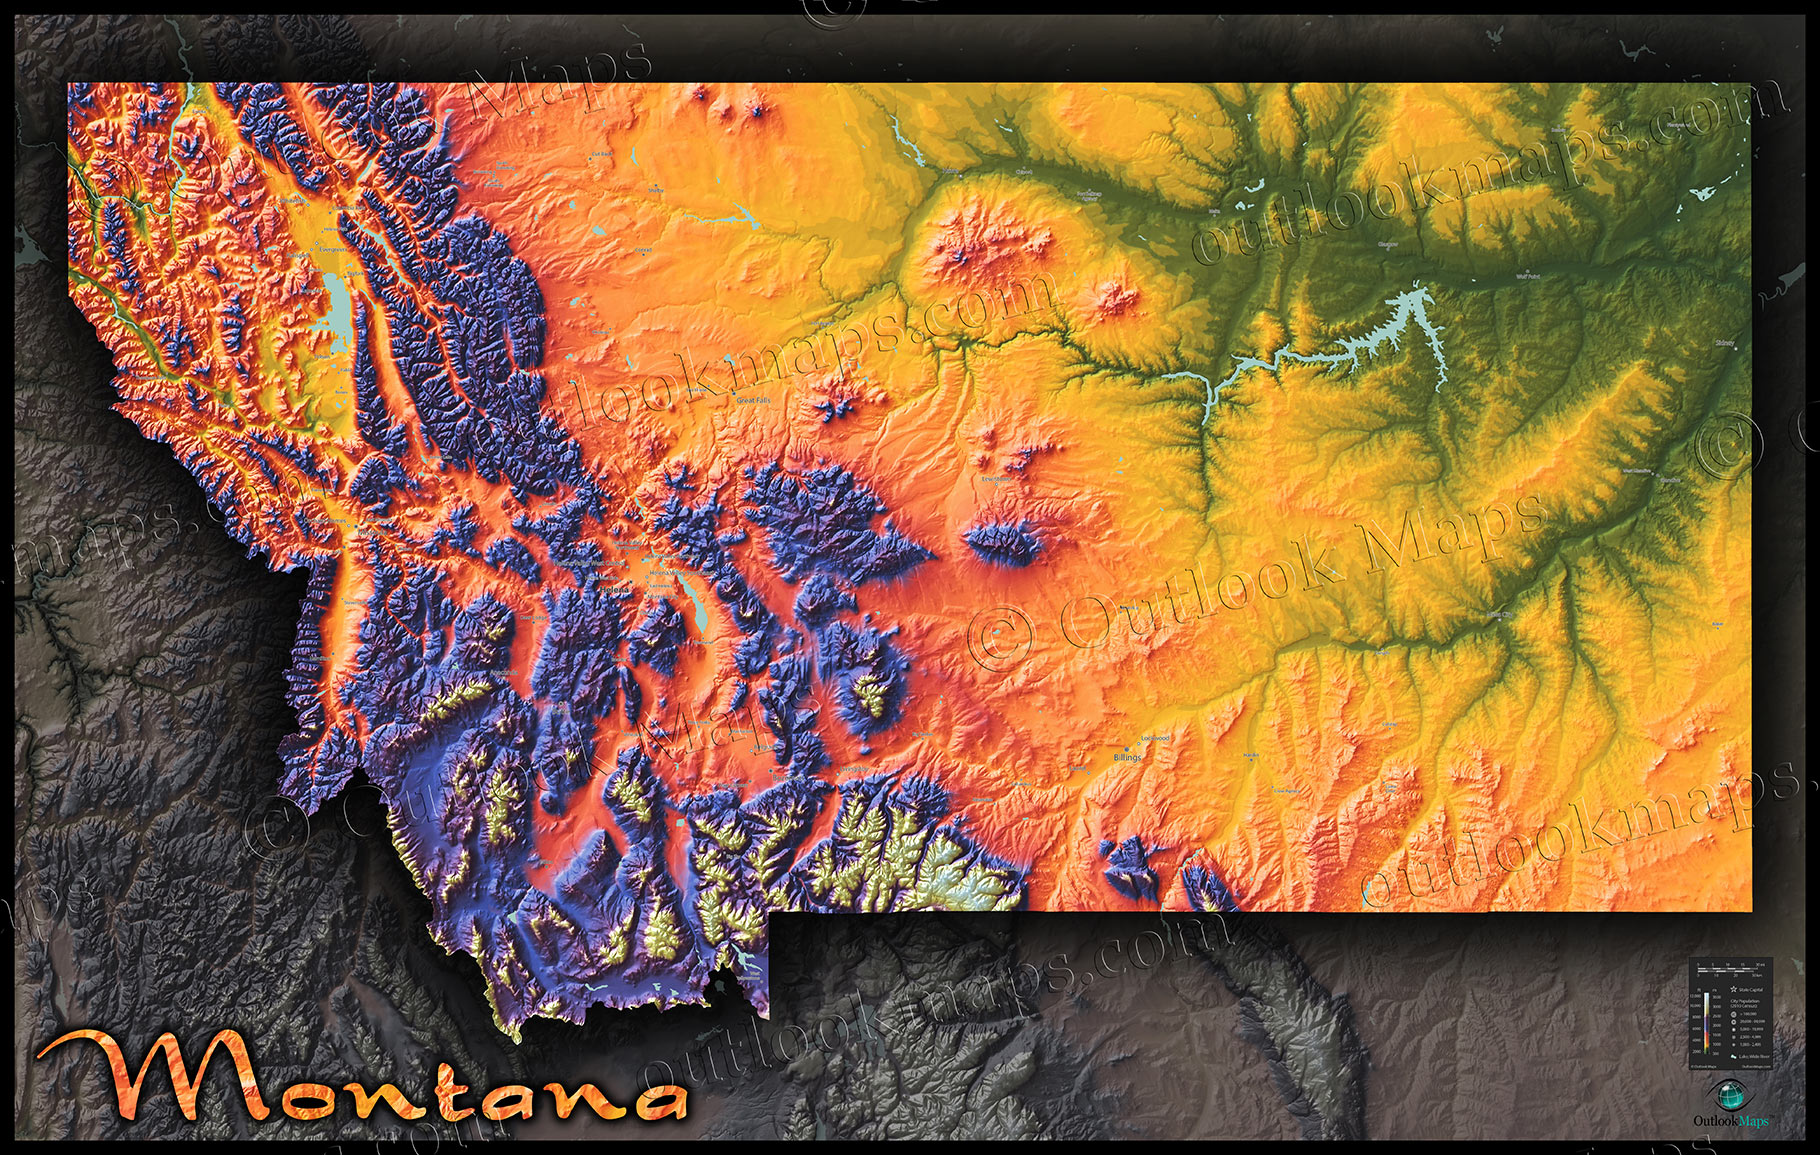 Montana Topography Map Physical Style With Colorful Mountains